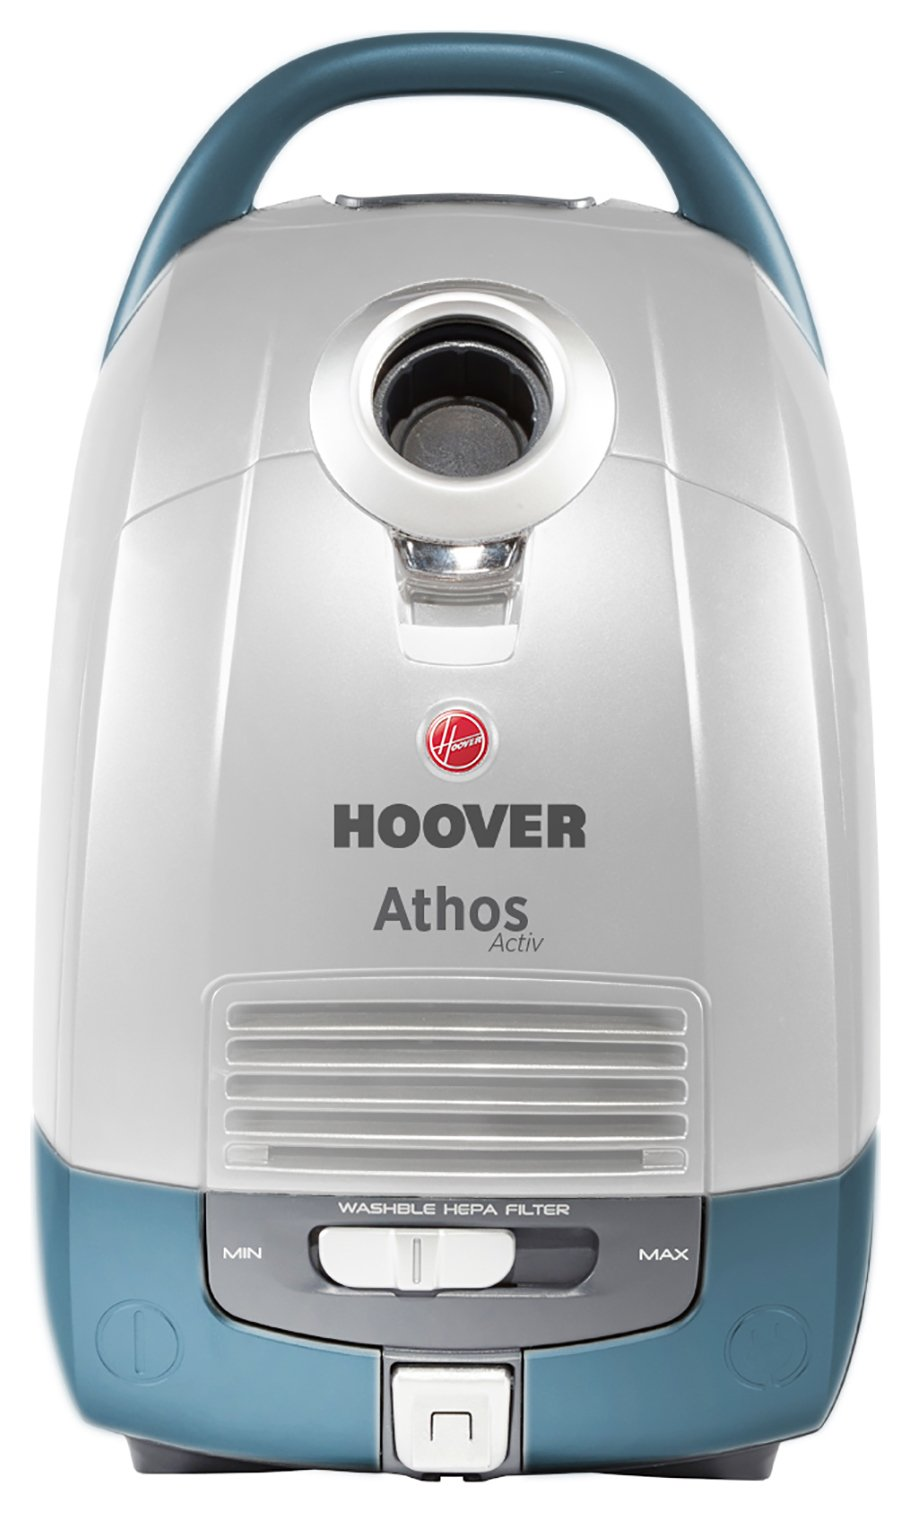 Hoover Athos Activ Cordless Bagged Cylinder Vacuum Cleaner